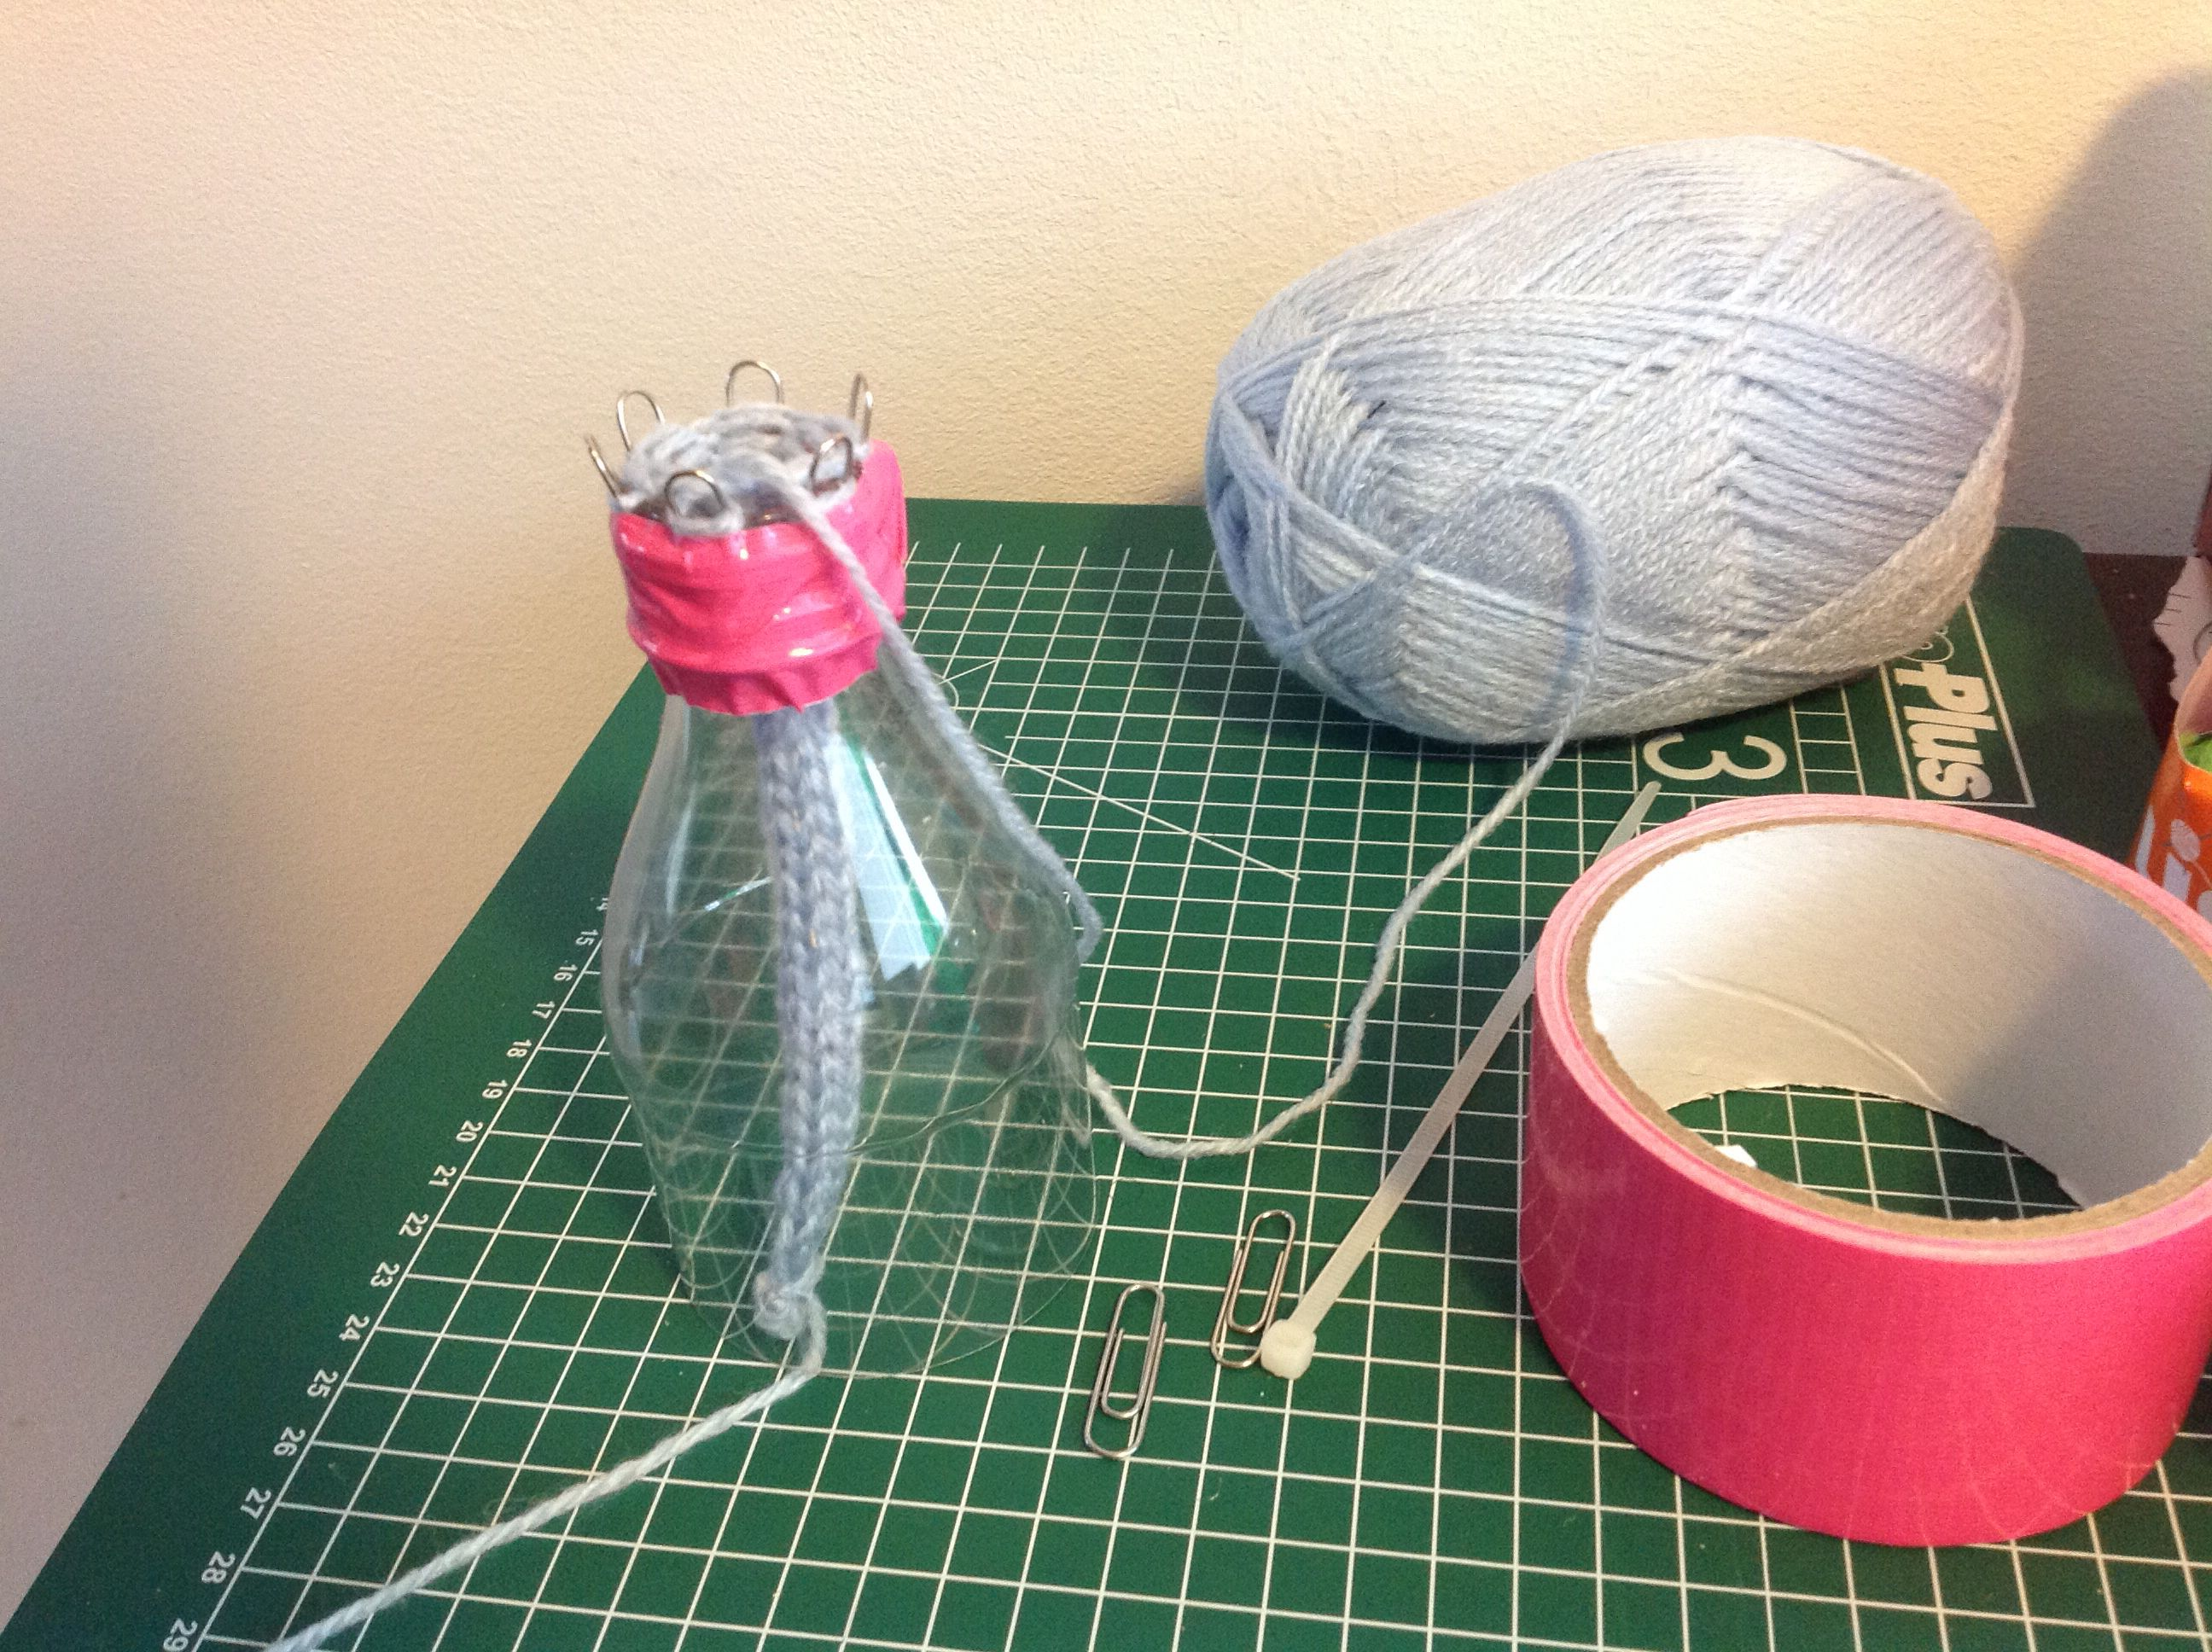 French Knitting Spool : Diy french knitting spool from paperclips and soft drink